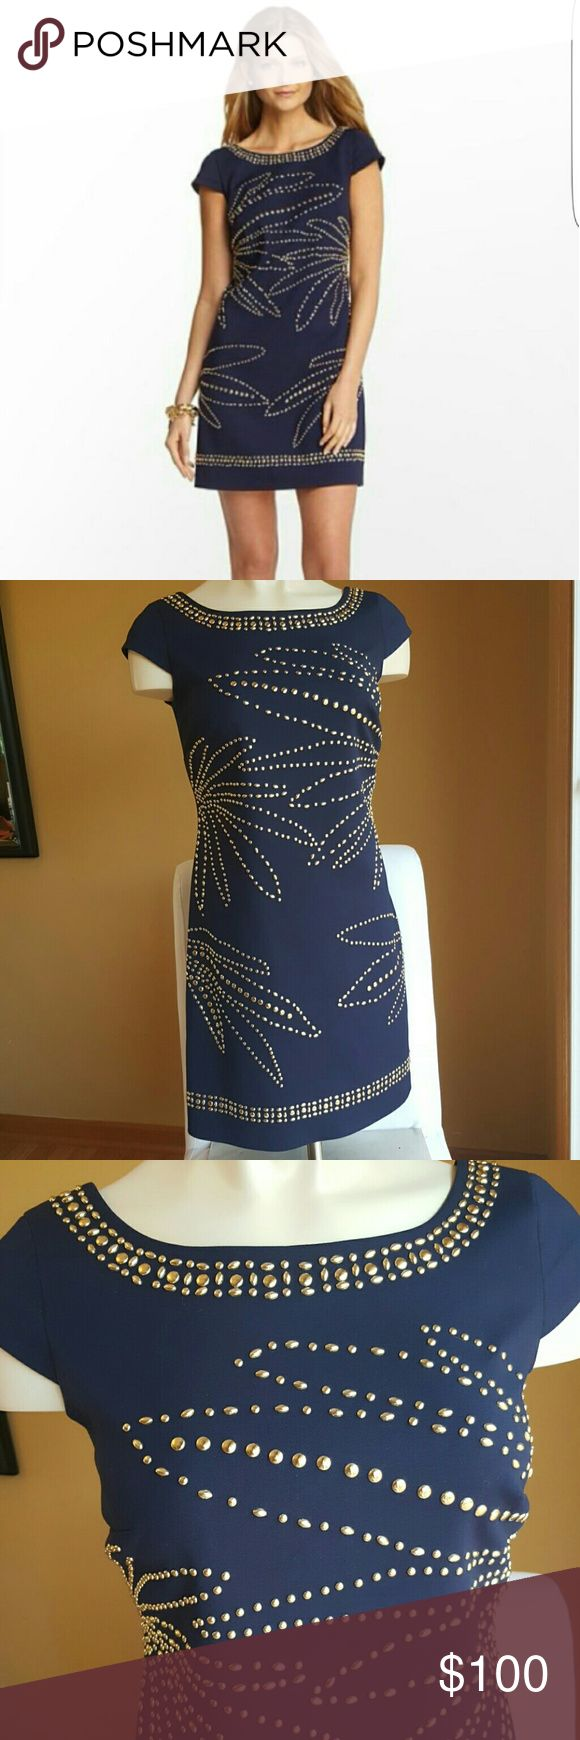 """TAKE 20% OFF!❤ *LILLY PULITZER DRESS*❤ SALE! TAKE 20% OFF LISTED PRICE! ALL LILLY! """"Stud Muffin"""" Lilly Pulitzer dress  Impeccable, like new condition- worn once  Navy with gold studs Size 4,  Cotton/nylon/spandex blend Inner lining Lilly Pulitzer Dresses Midi"""